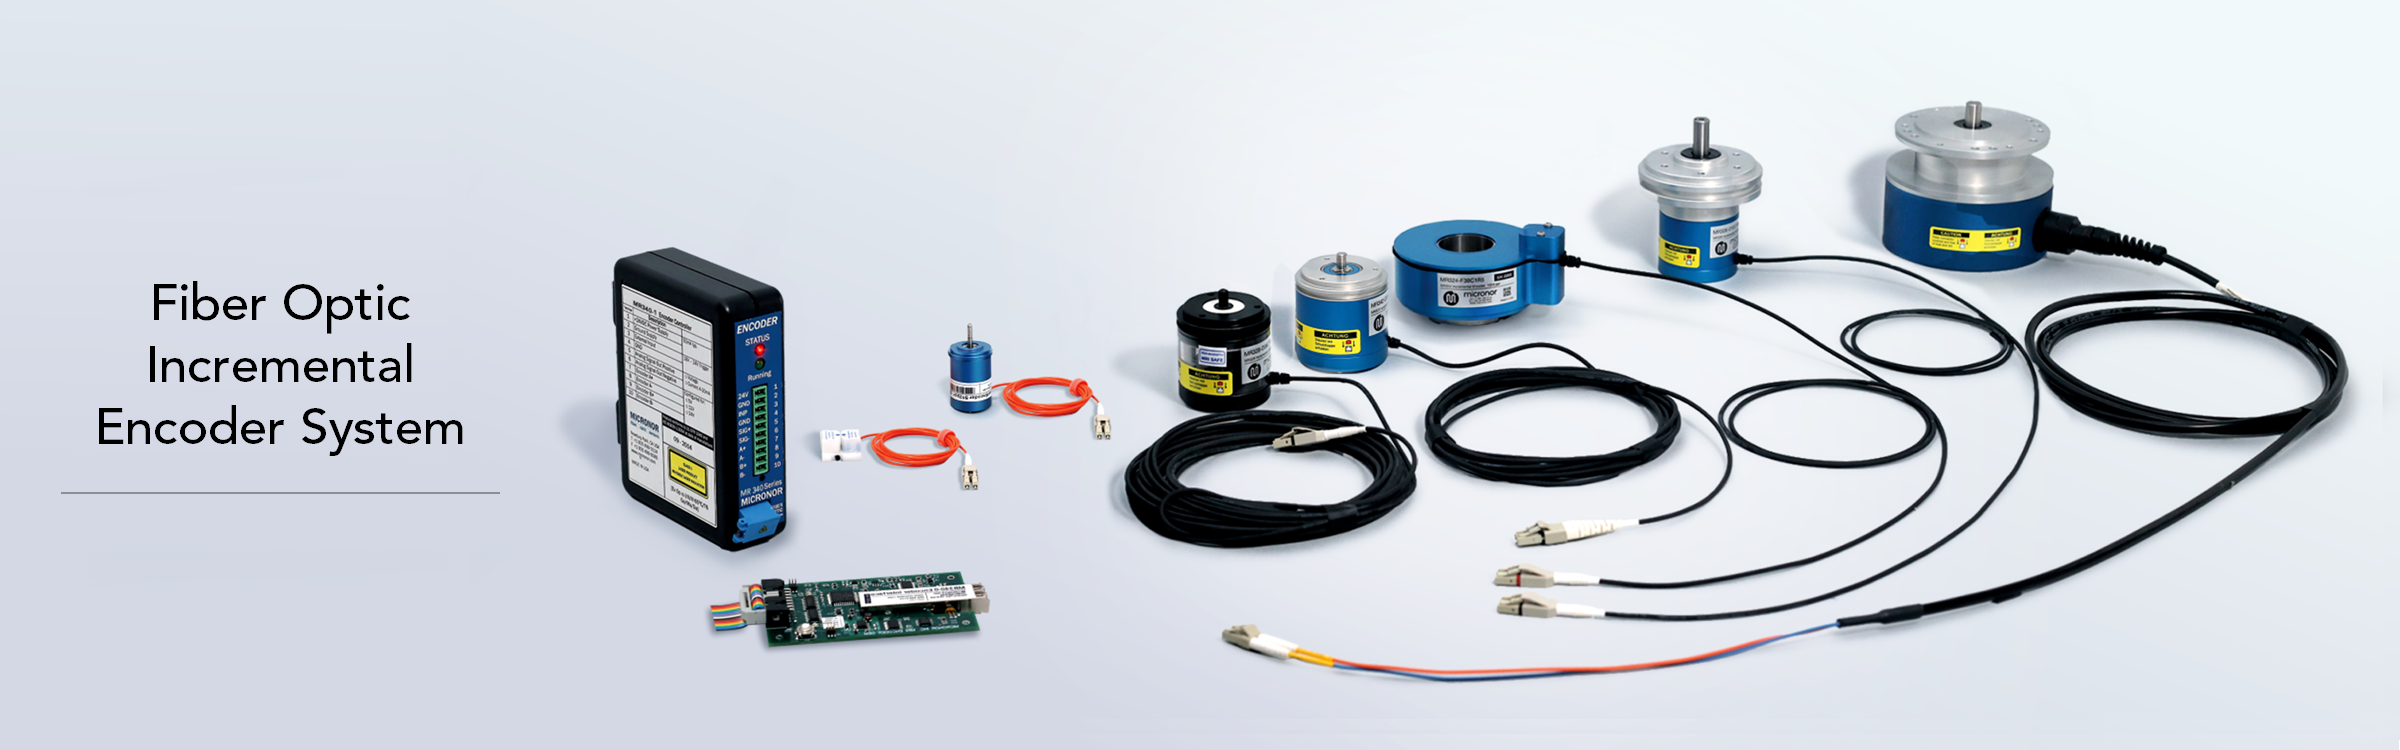 MR340 Series Fiber Optic Incremental Encoder System